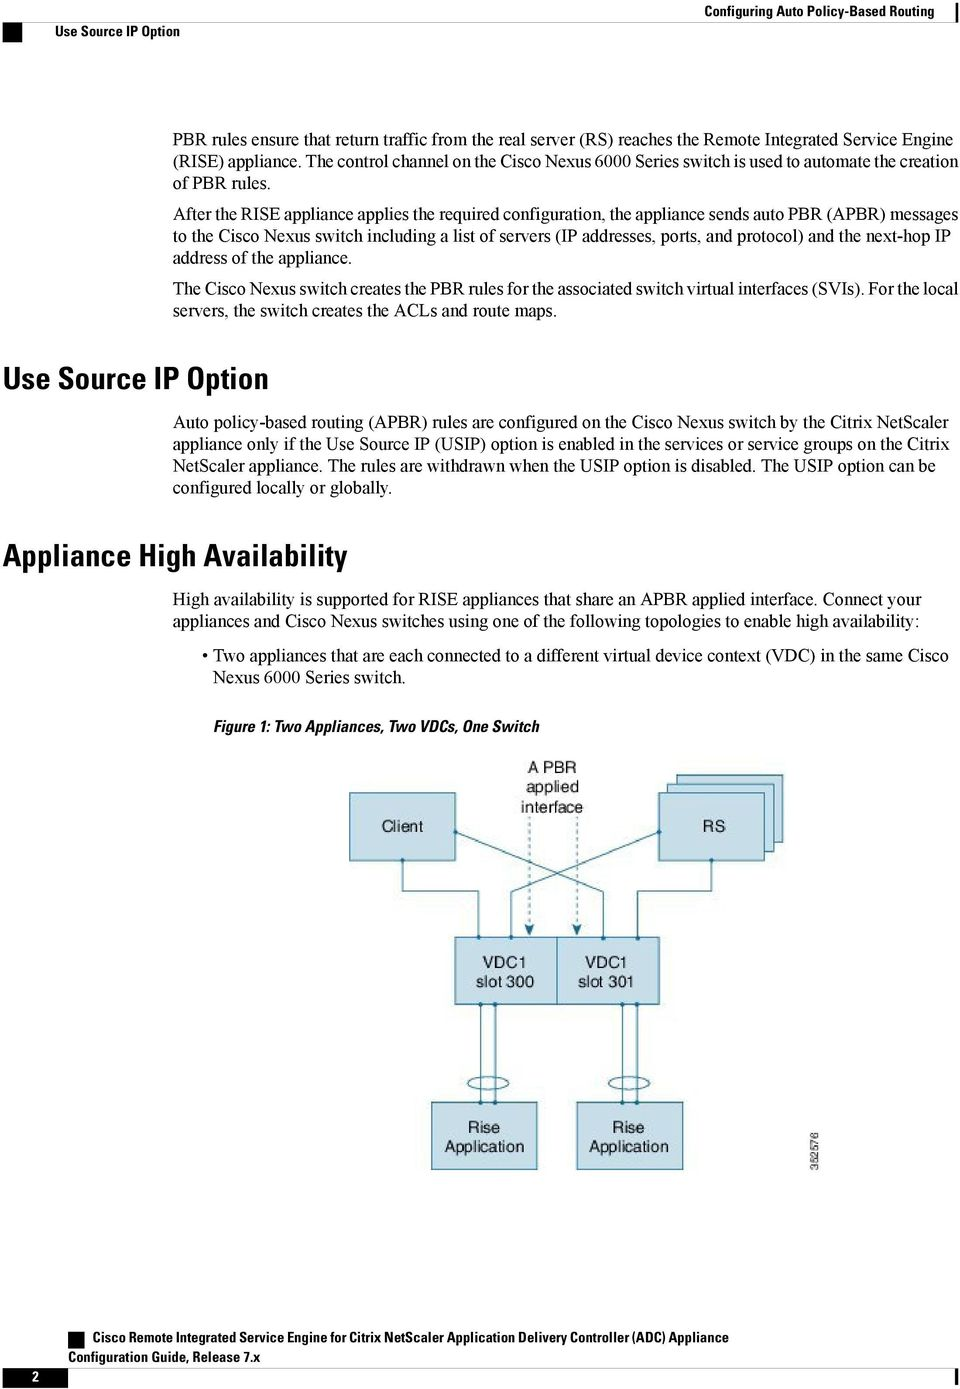 After the RISE appliance applies the required configuration, the appliance sends auto PBR (APBR) messages to the Cisco Nexus switch including a list of servers (IP addresses, ports, and protocol) and